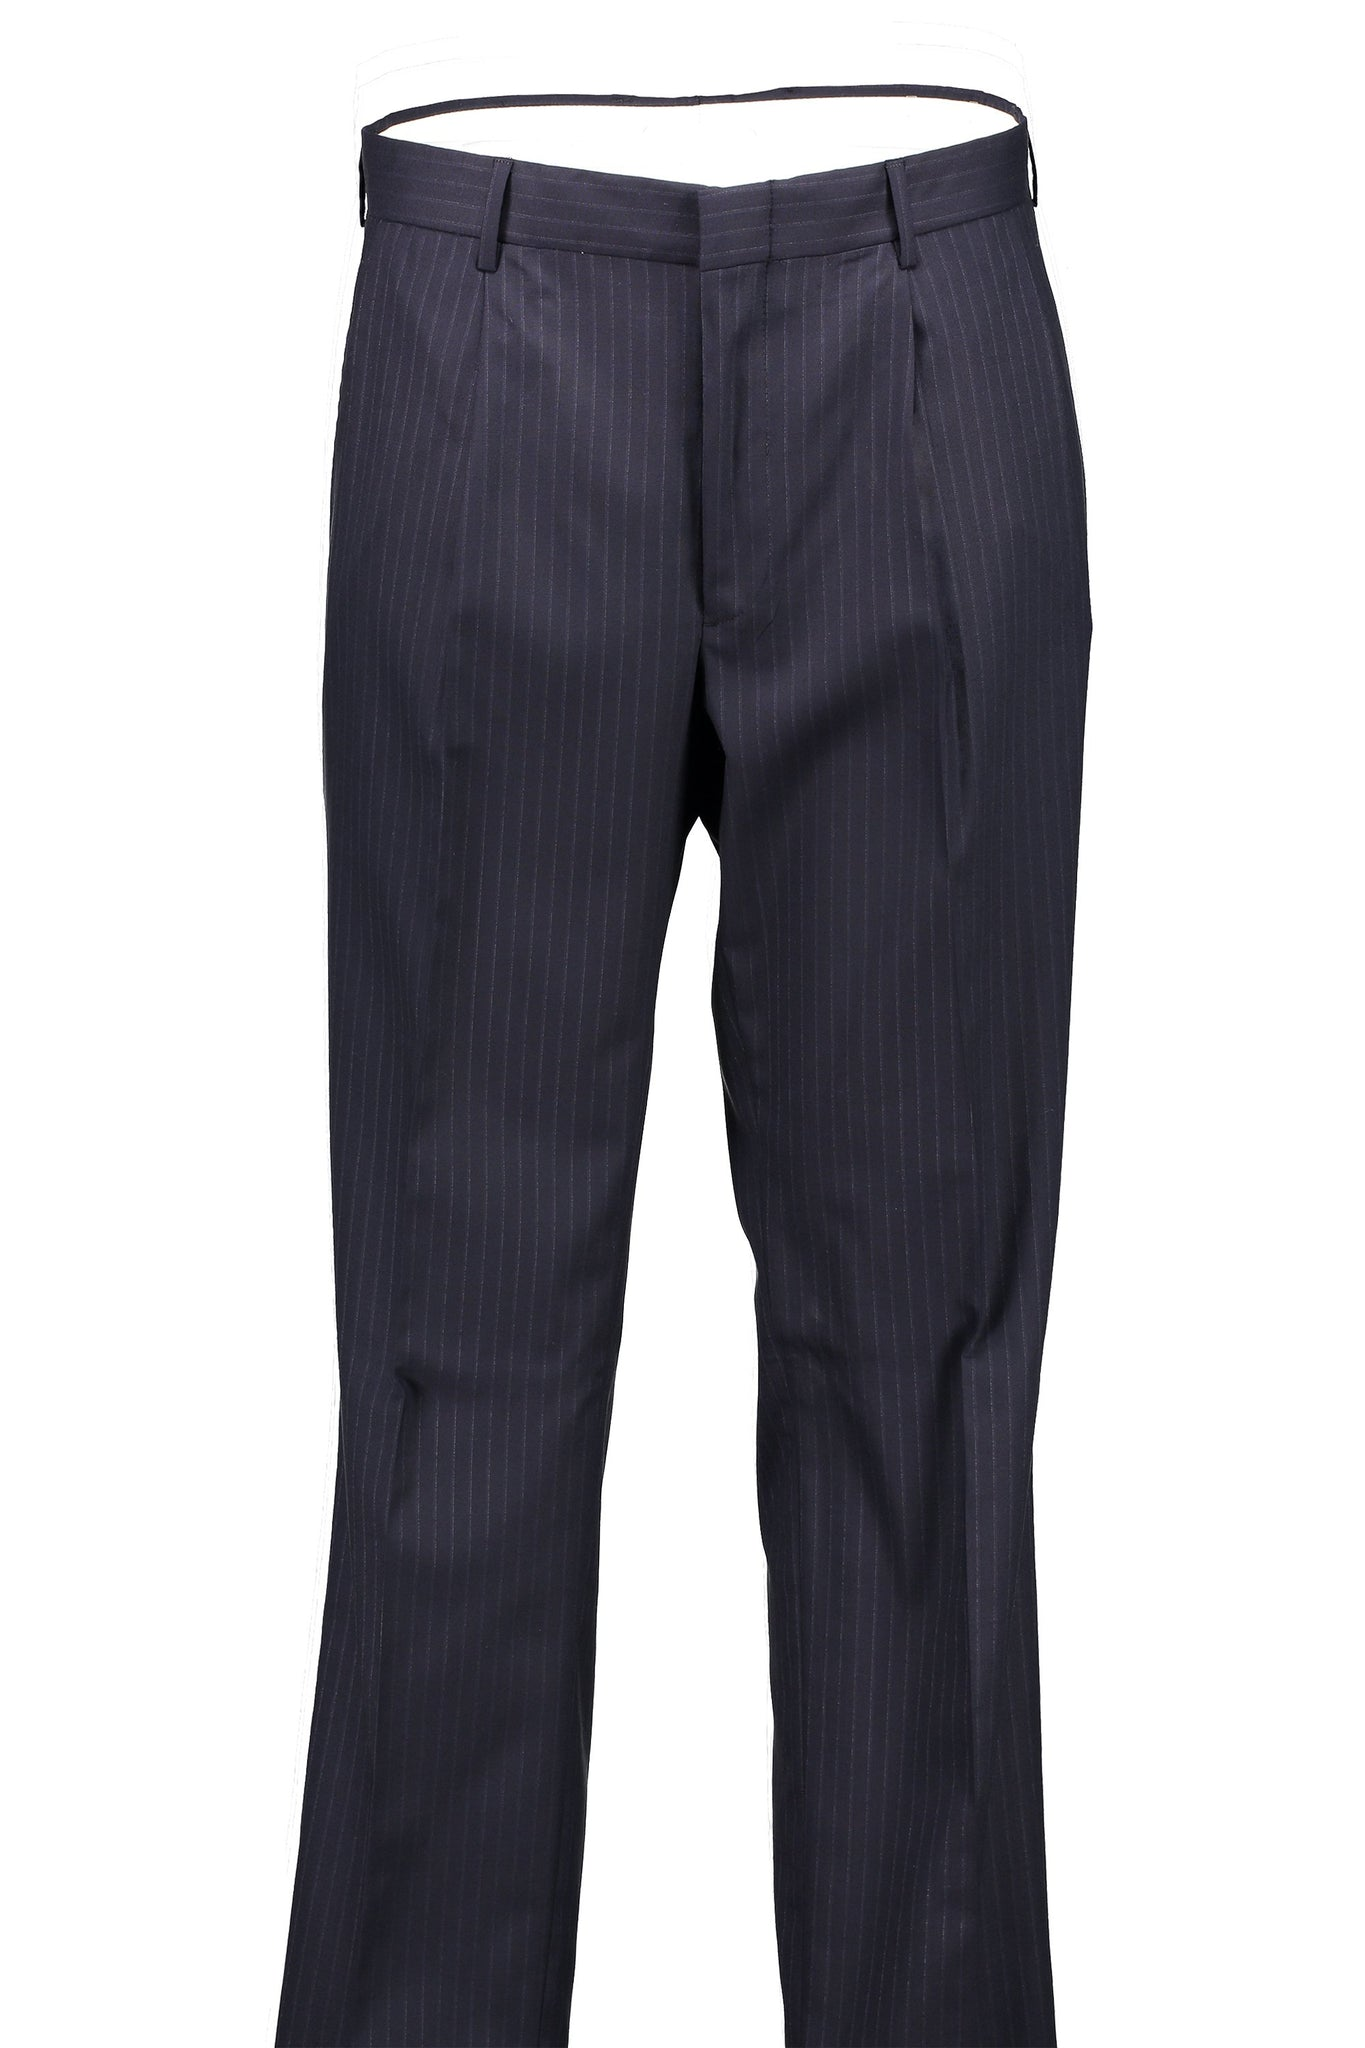 Classic Fit Navy Pinstripe H-Tech Wool Suit Separate Pleated Pant -  Hardwick.com